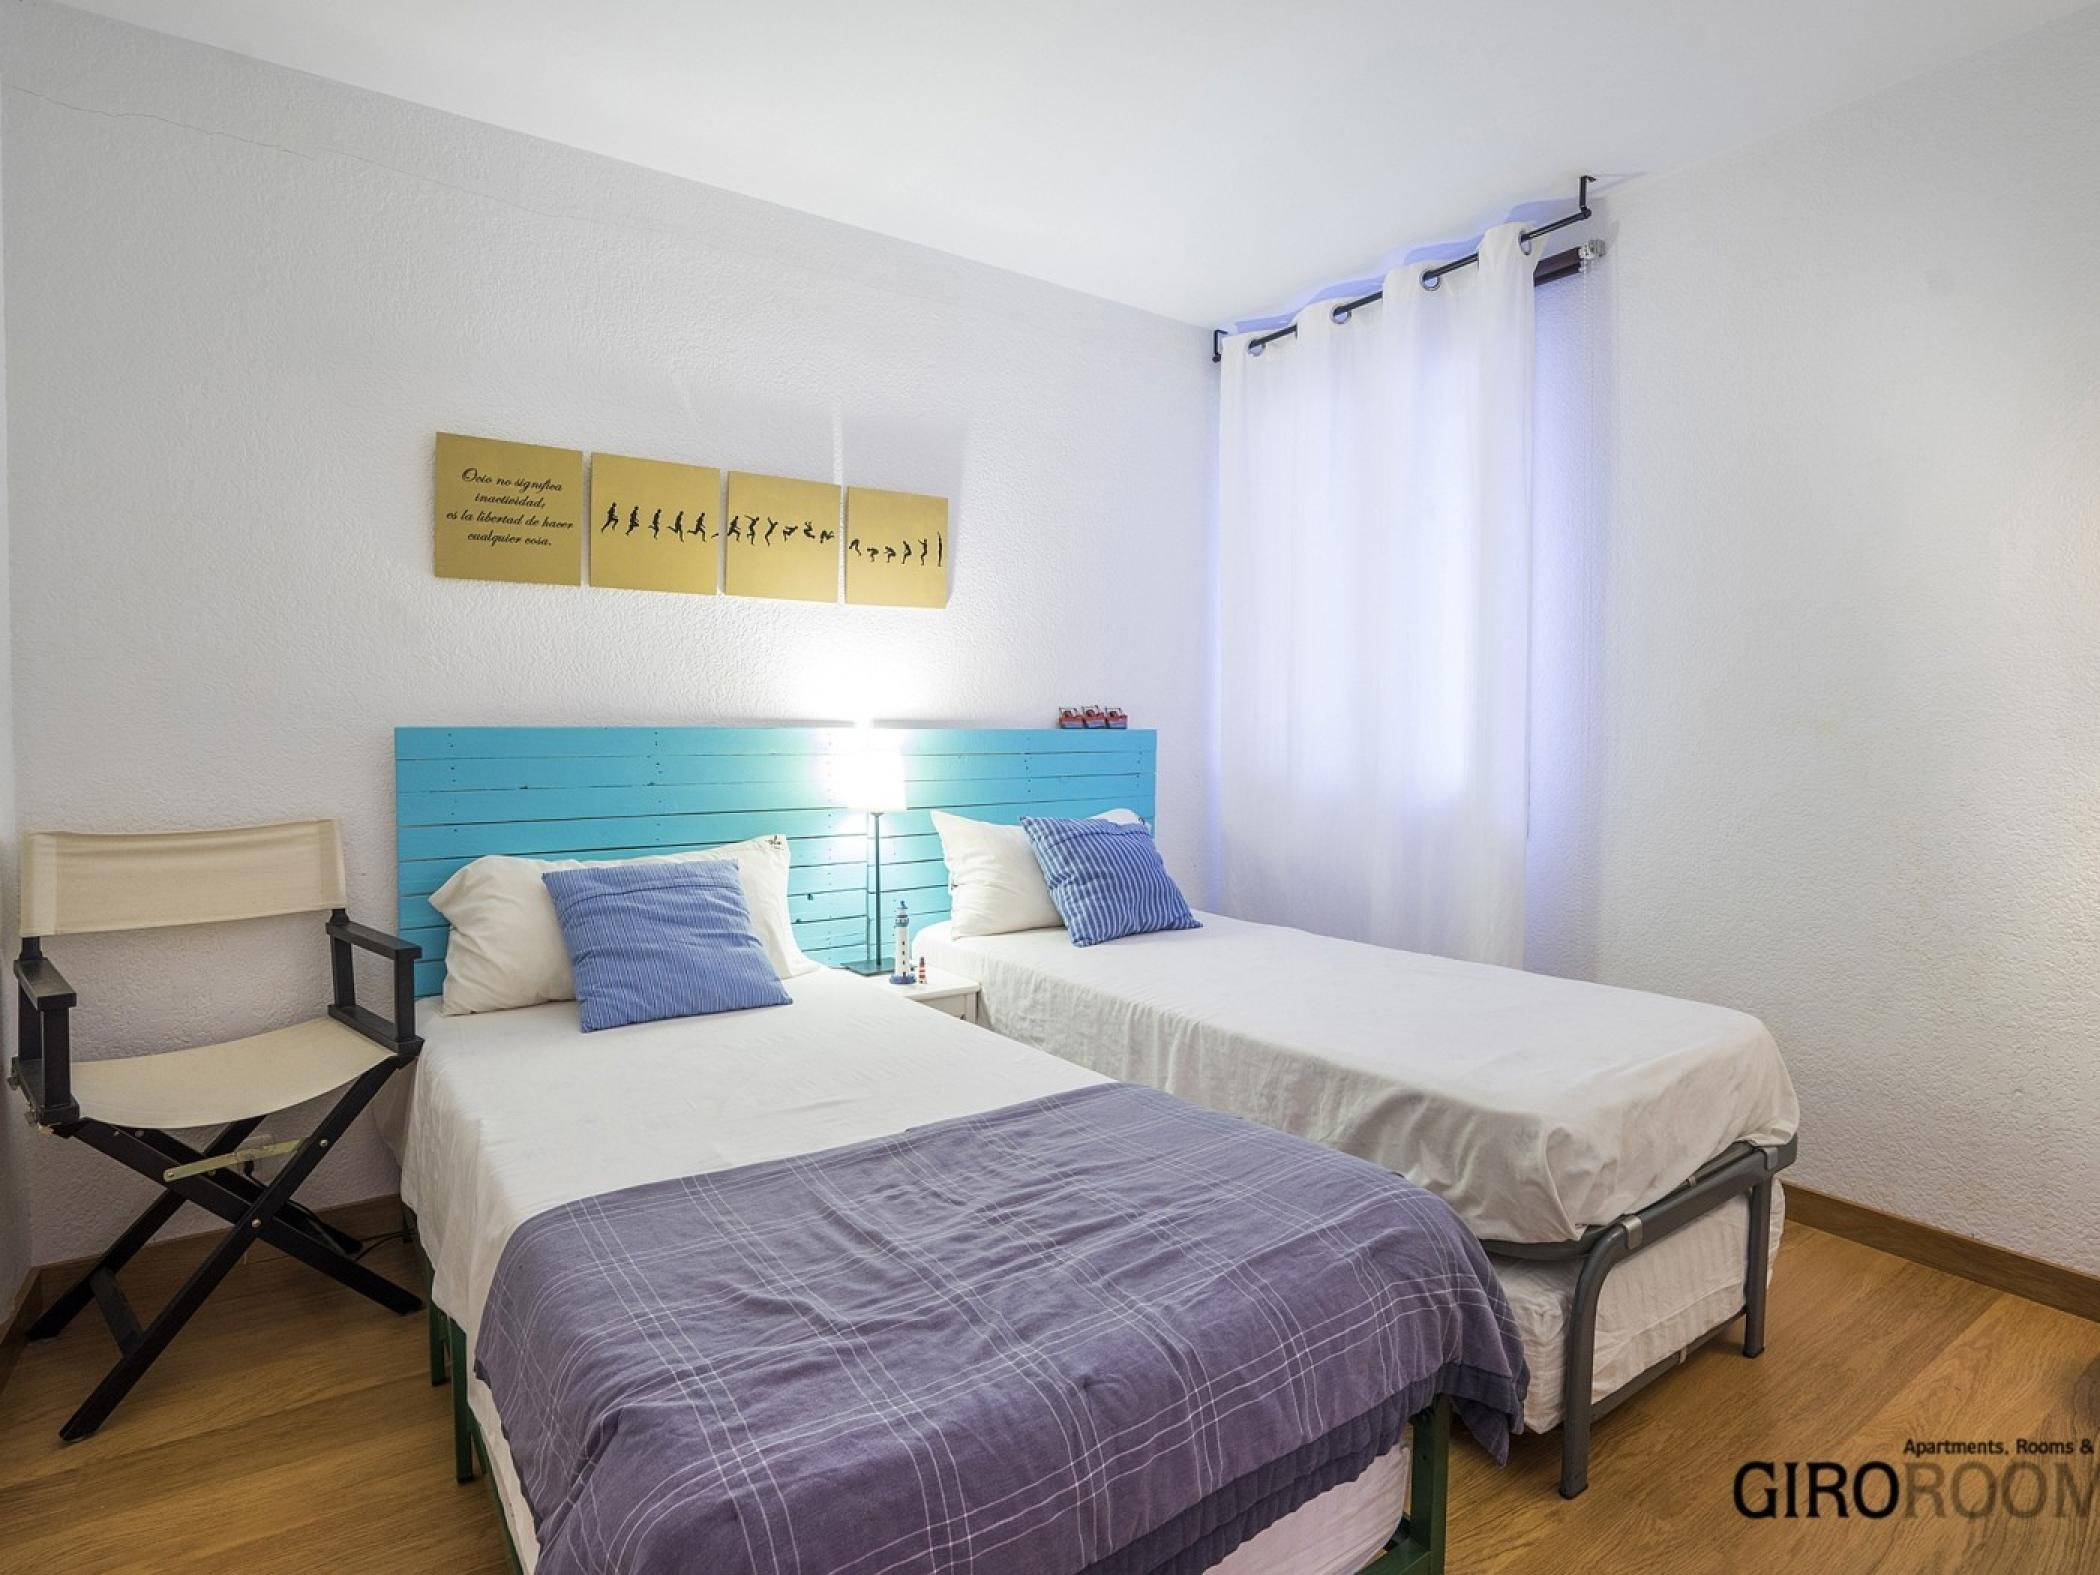 Rent Apartment with Swimming pool in Sant Antoni de Calonge - Eden Mar VIII - 8